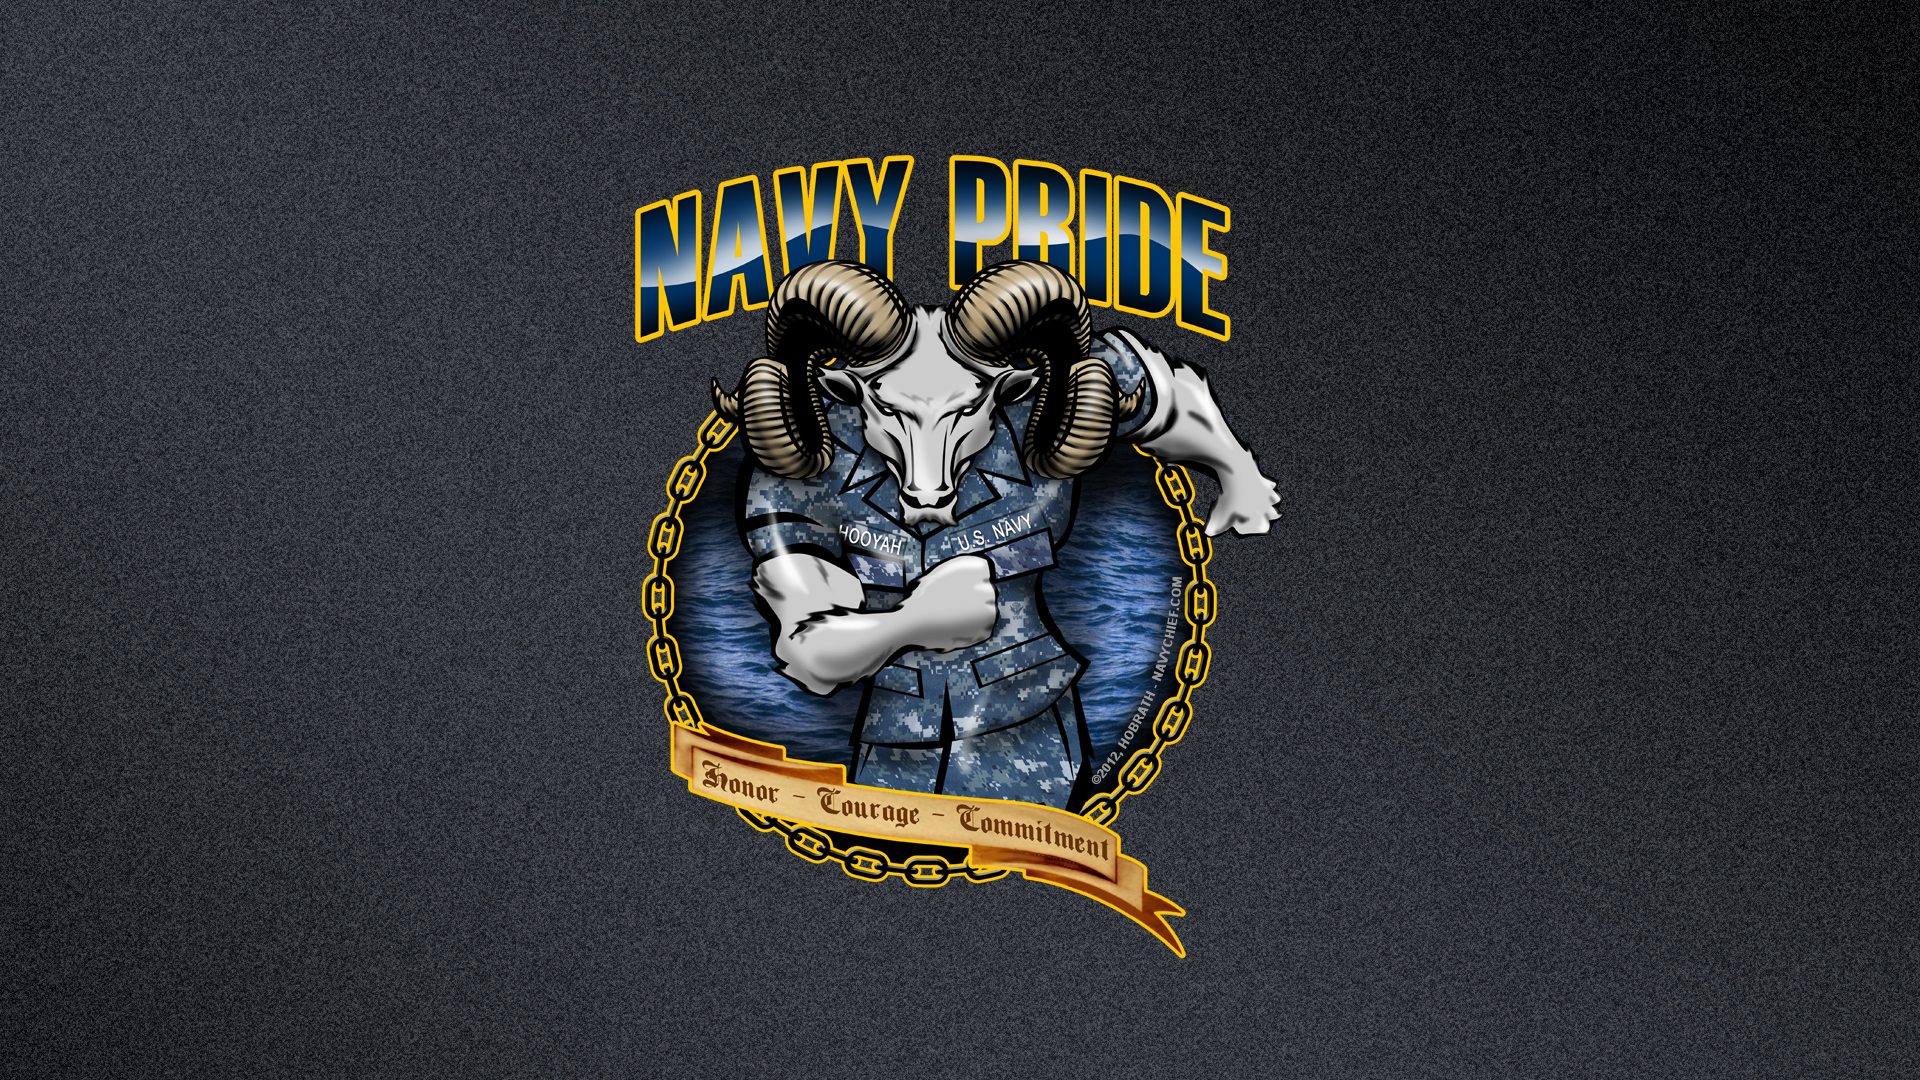 NavyChiefcom Wallpapers 1920x1080